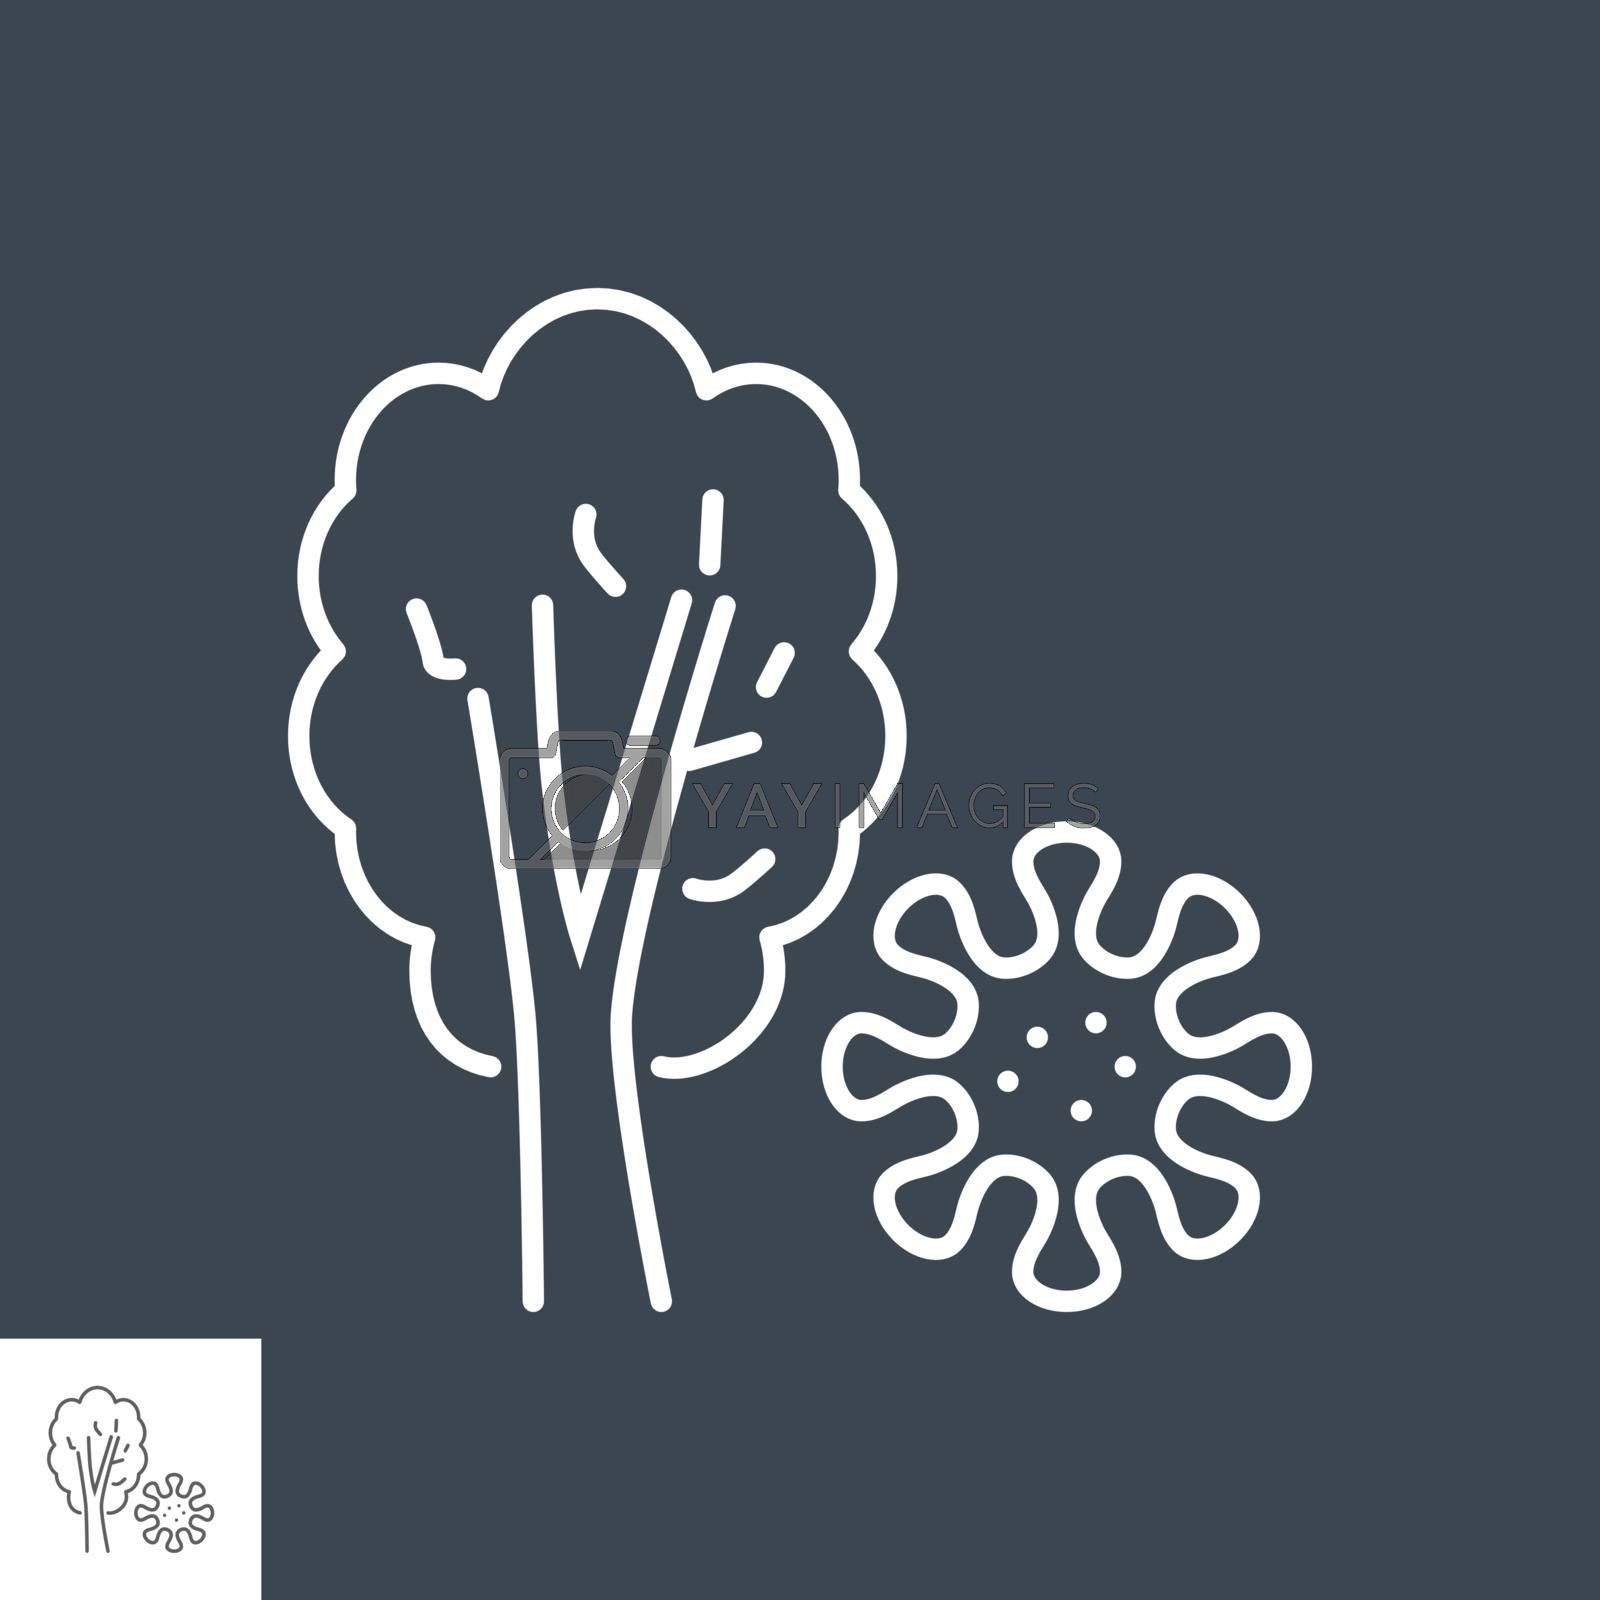 Virus on plant related vector thin line icon. Isolated on black background. Editable stroke. Vector illustration.